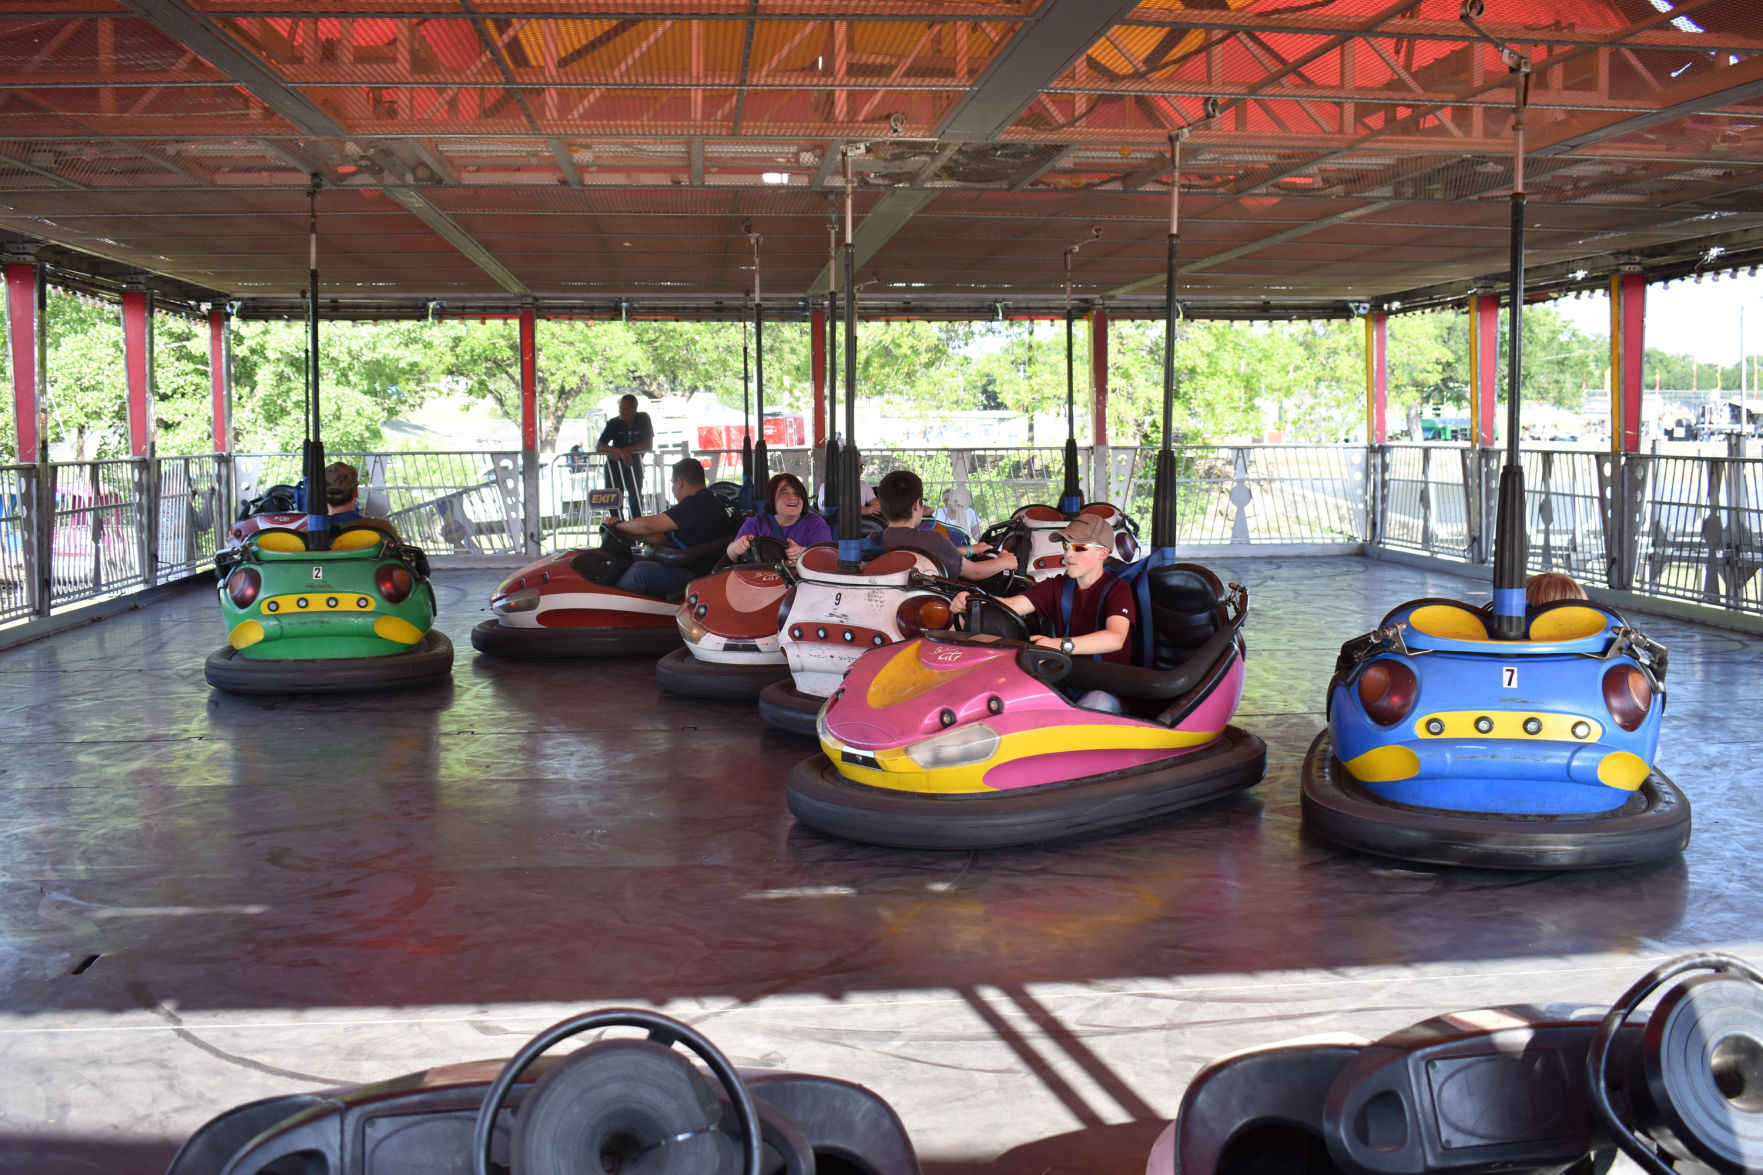 Plenty of fun for Mother's Day weekend in Killeen area